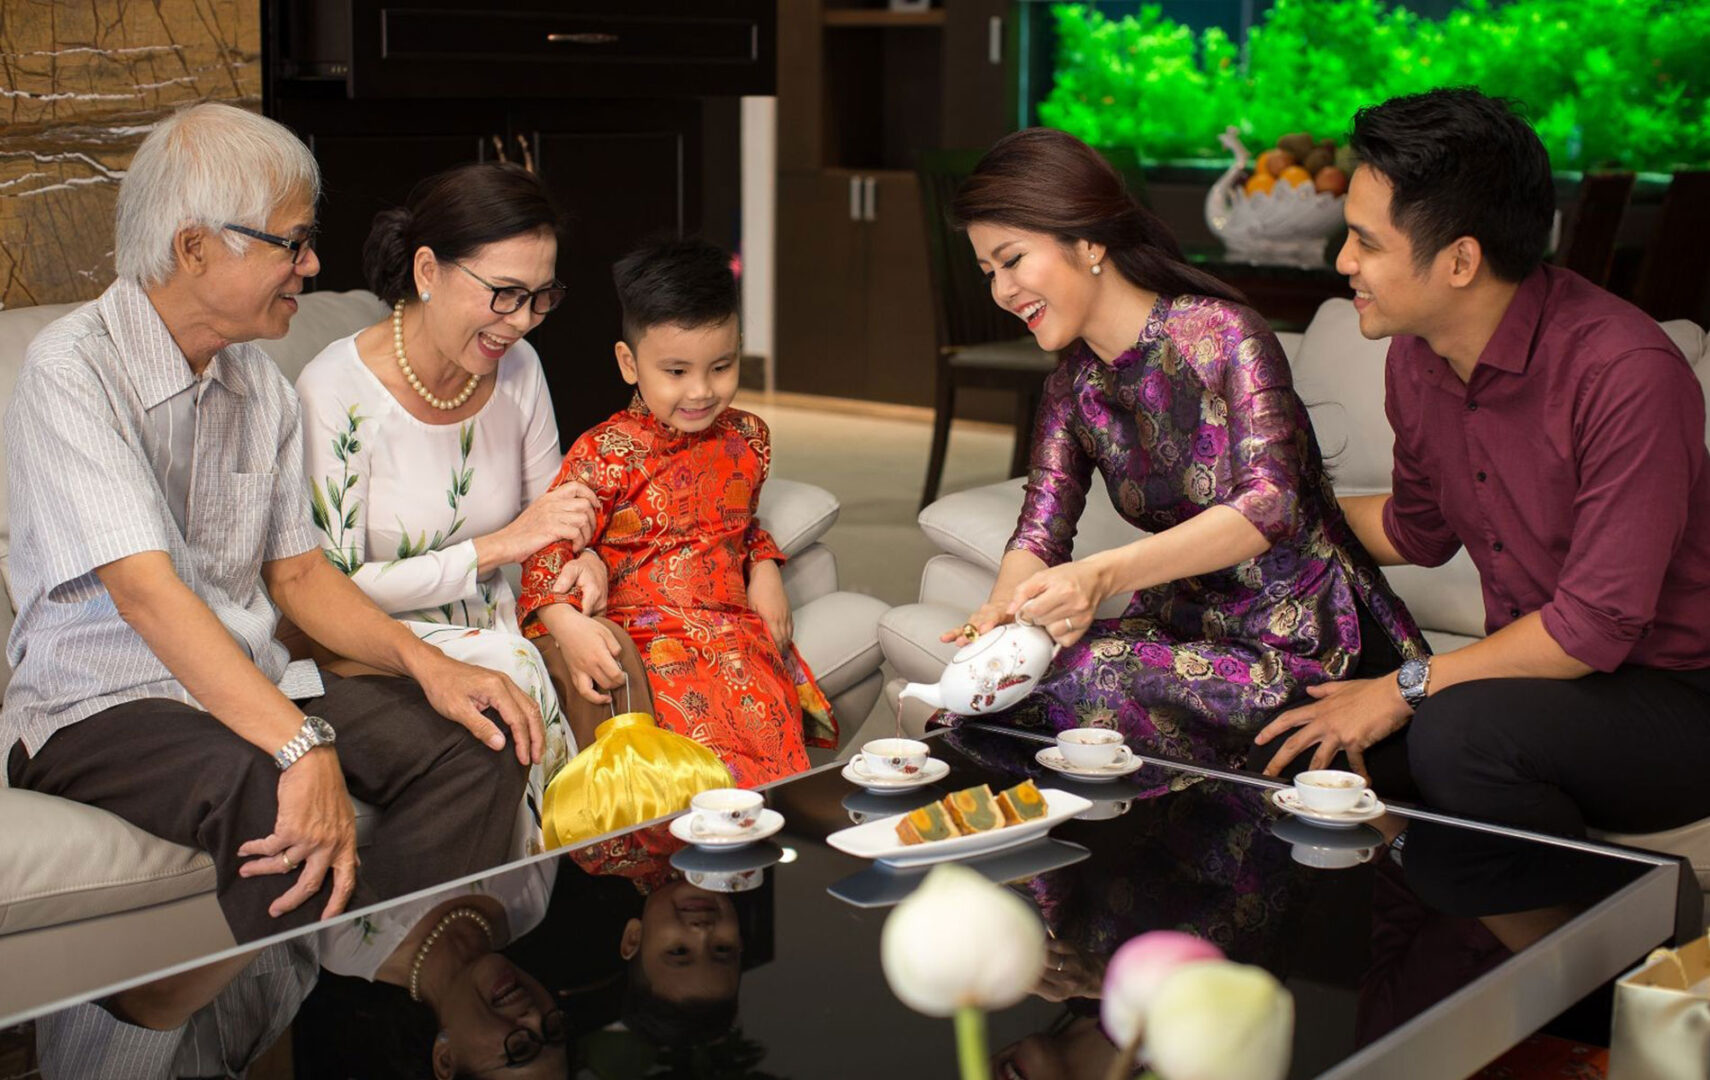 In mid-Autumn festival, Vietnamese family gathers with moon cakes and cups of hot tea.